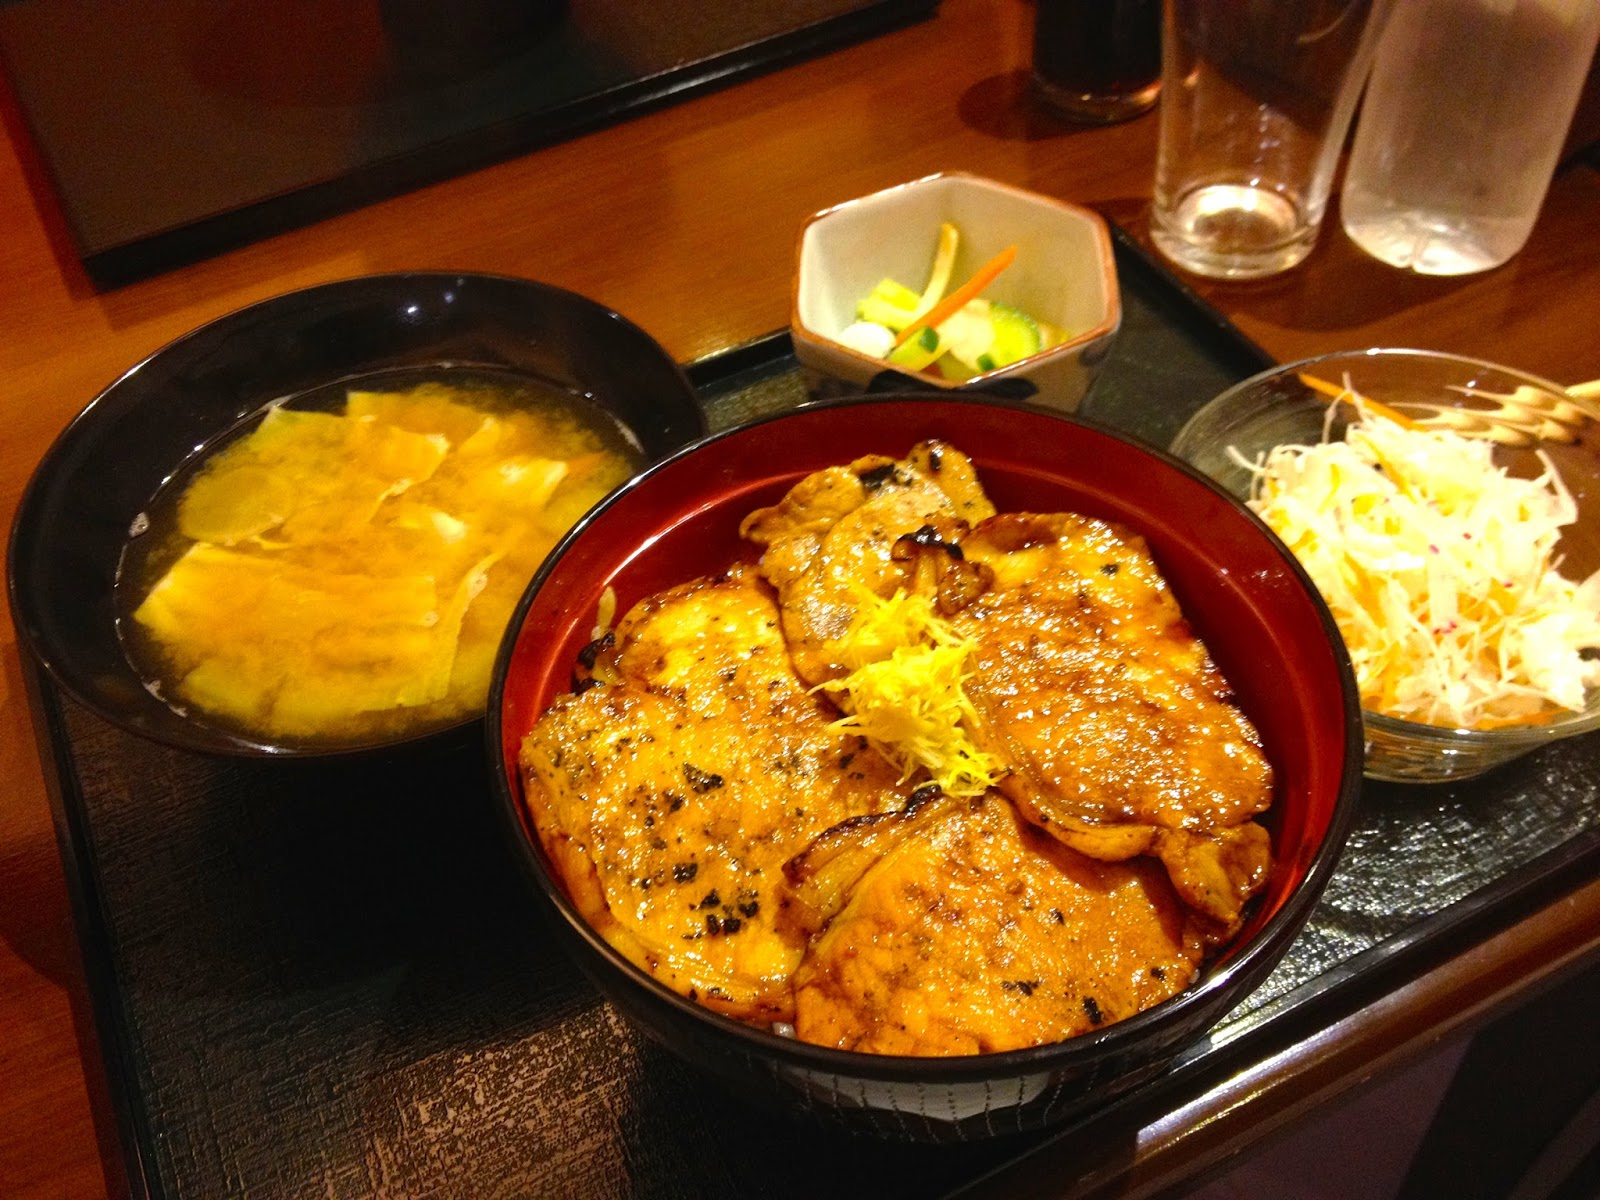 Pork Bowl set at Obihiro Butadon